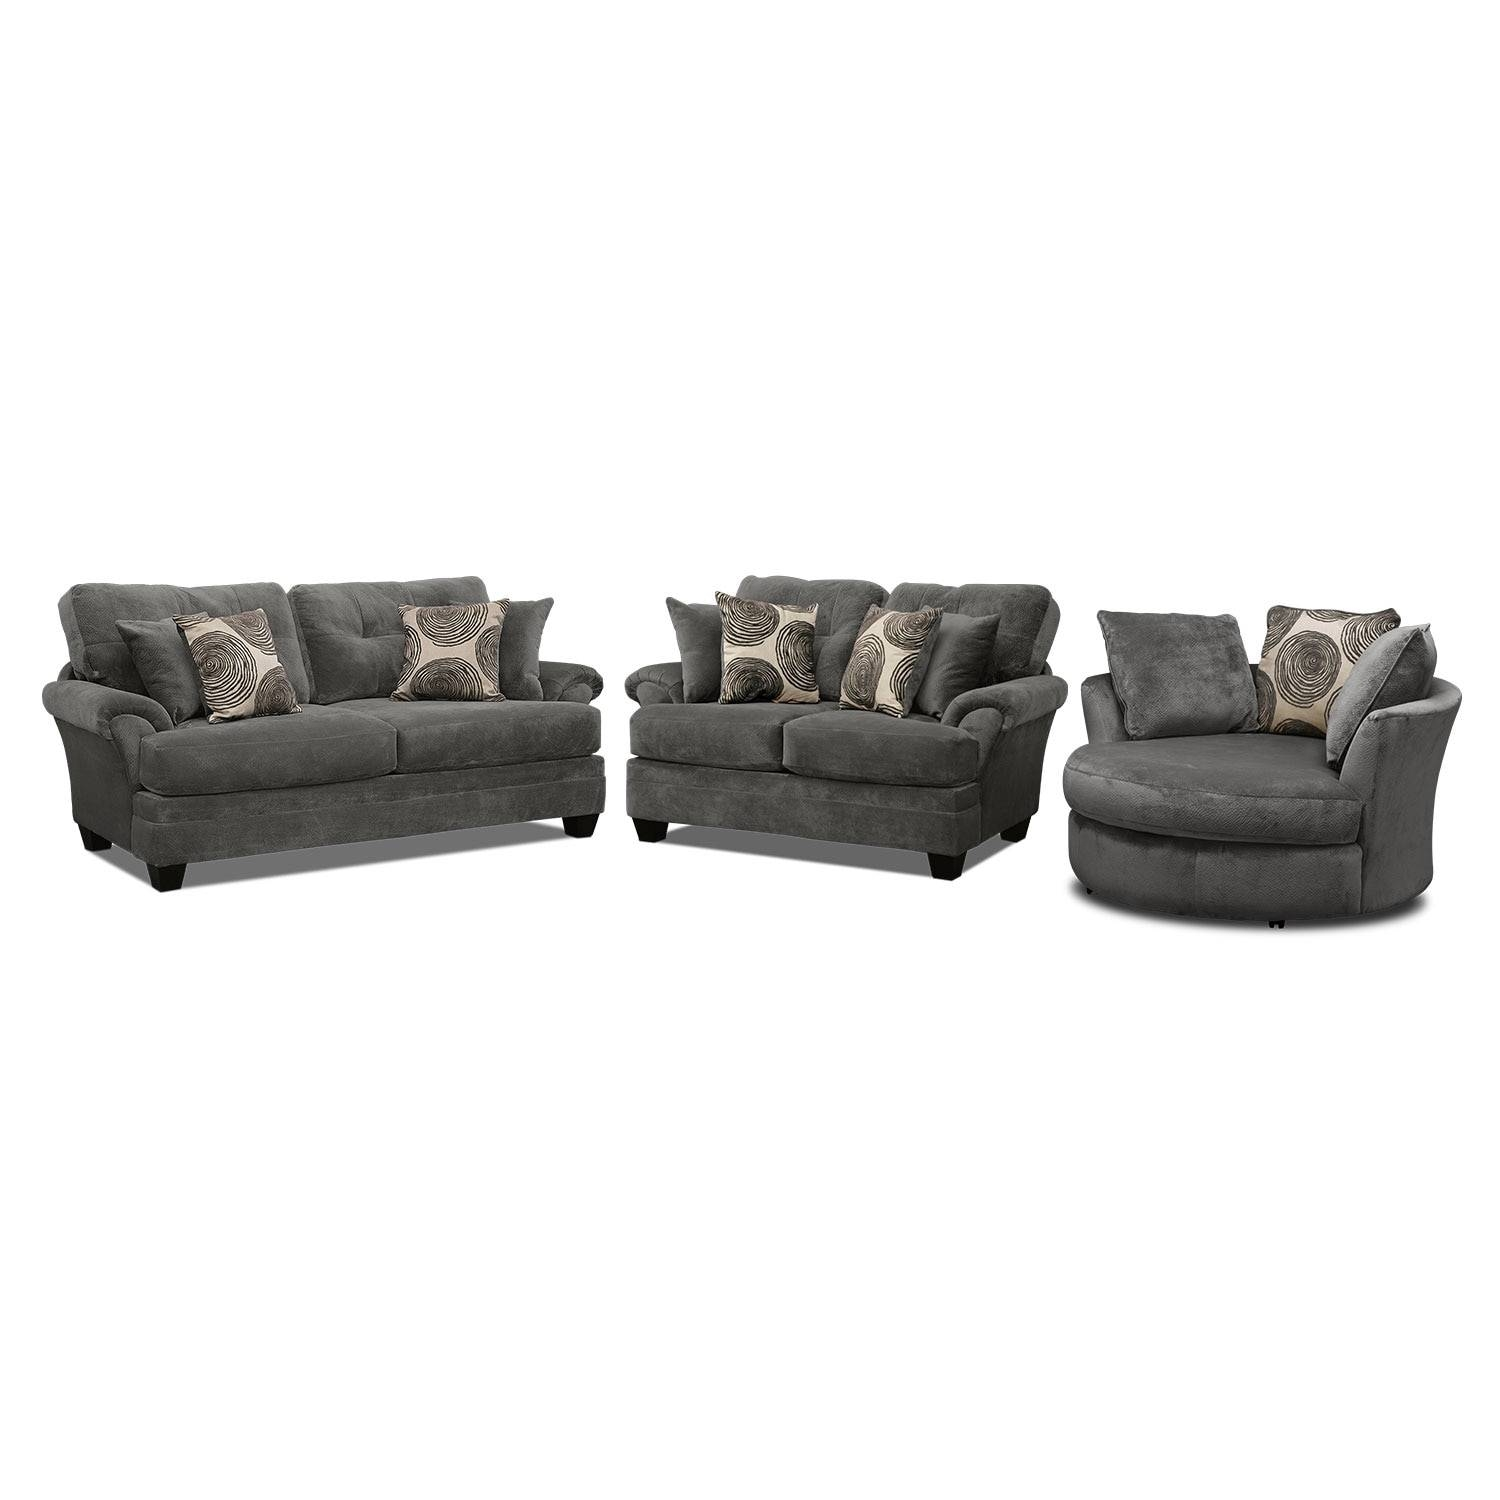 Cordelle Sofa, Loveseat And Swivel Chair Set - Gray | Value City inside Sofa With Swivel Chair (Image 8 of 30)